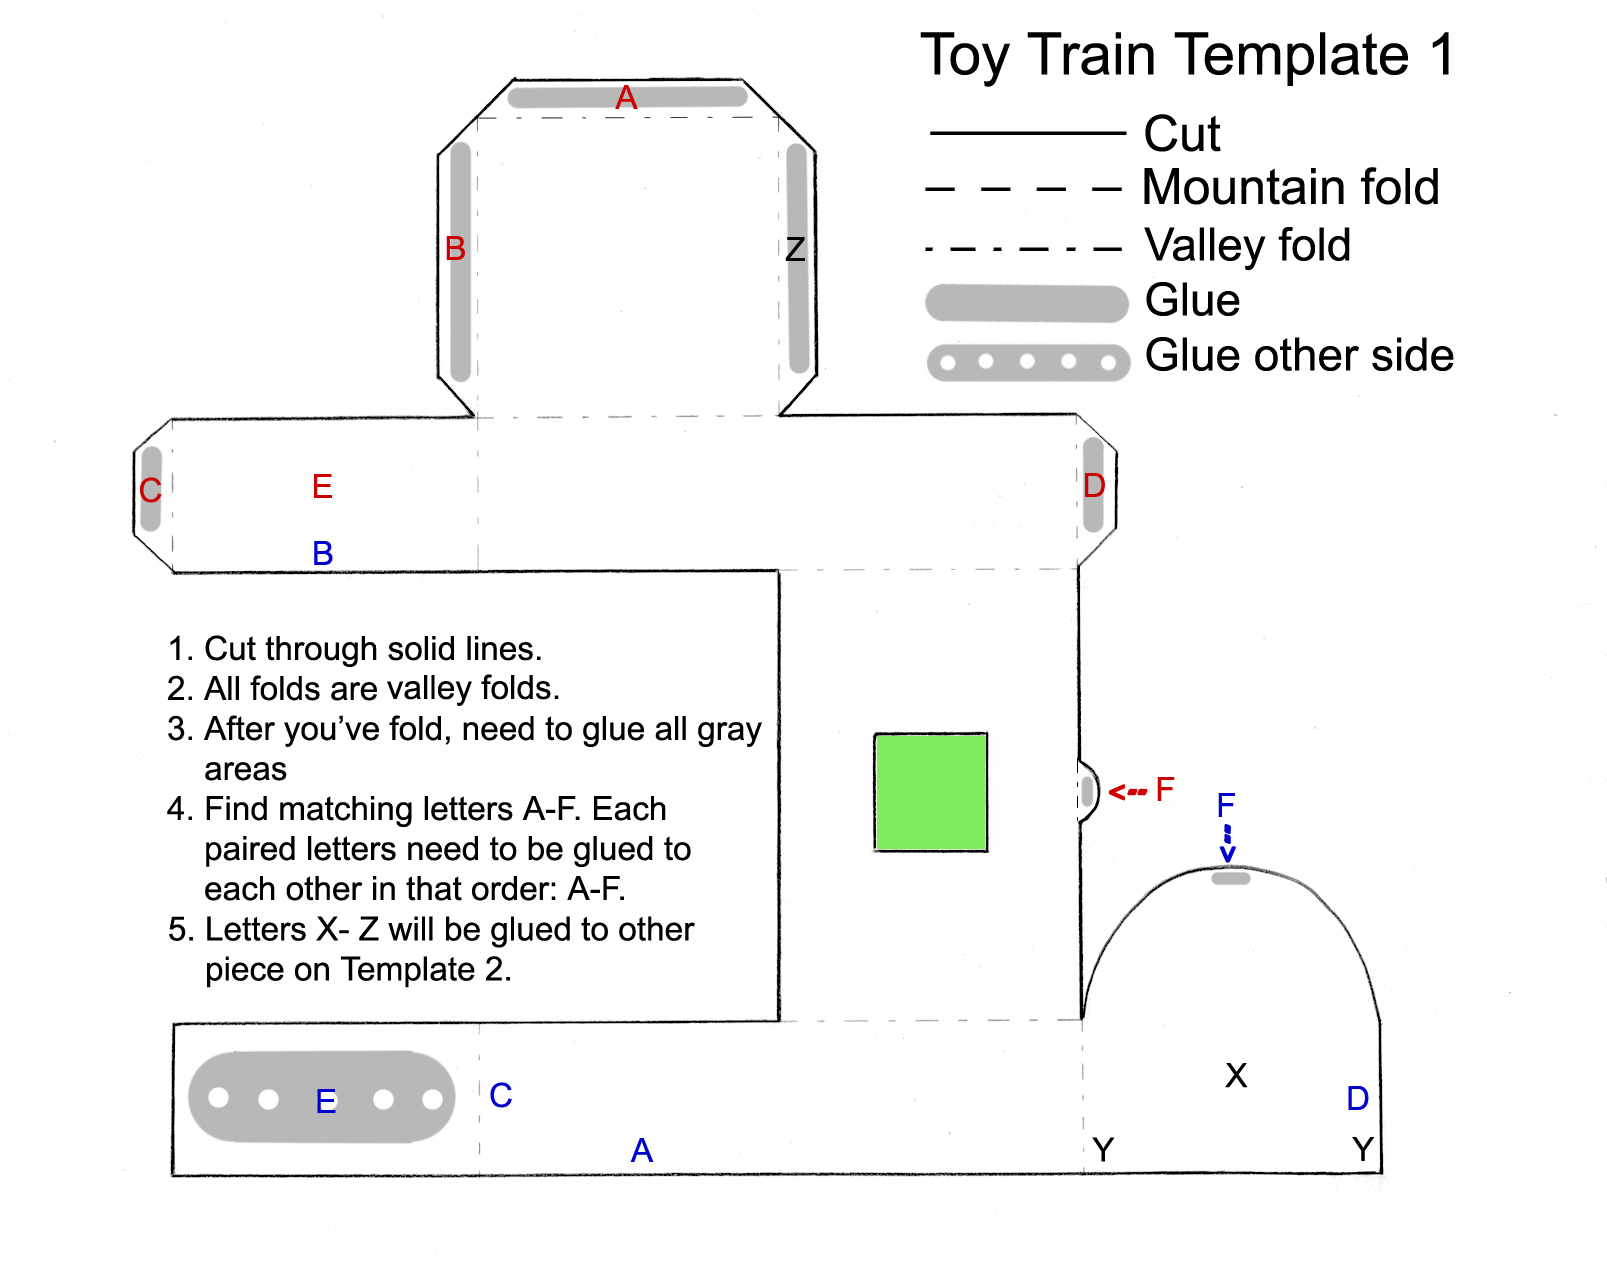 Toy Train Favor Template Part 1